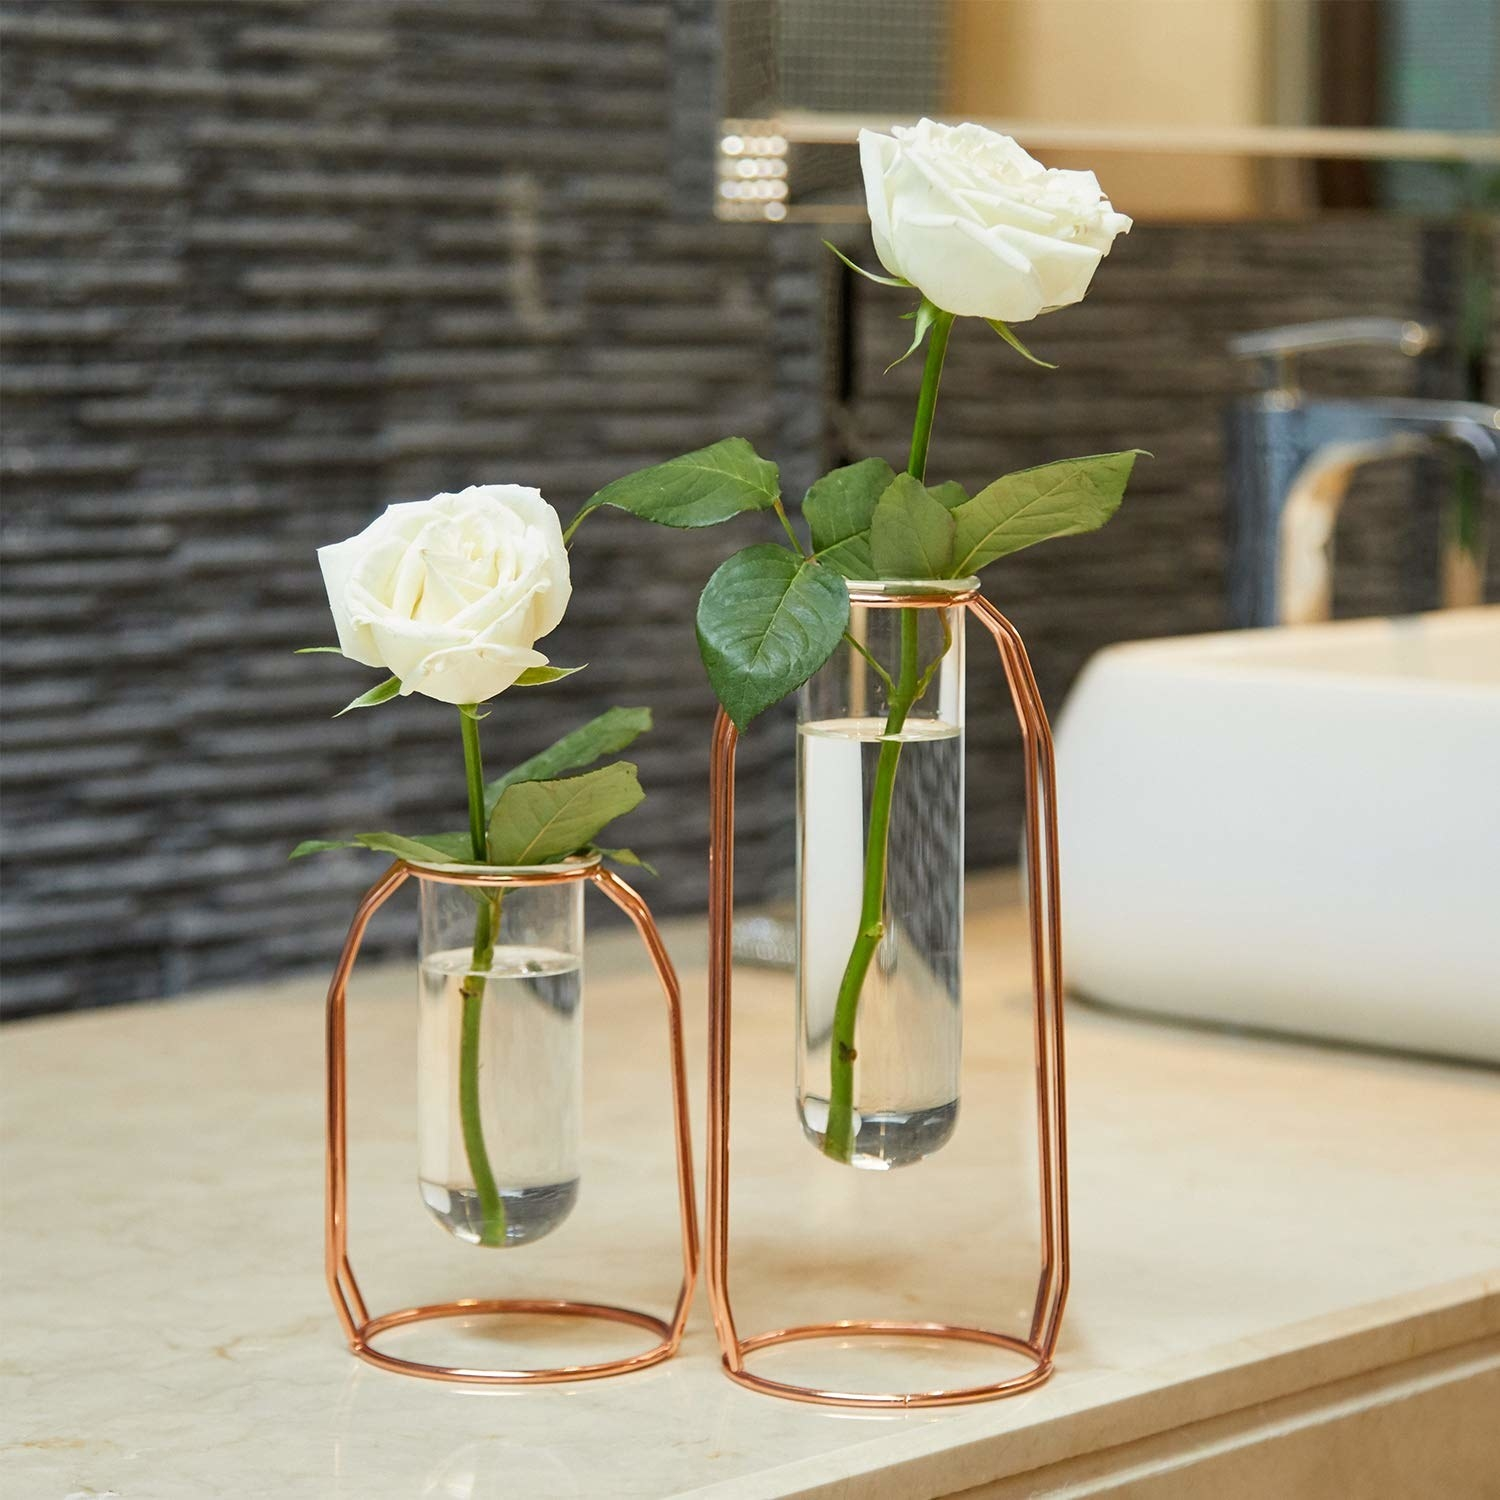 glass beakers held in metal vase